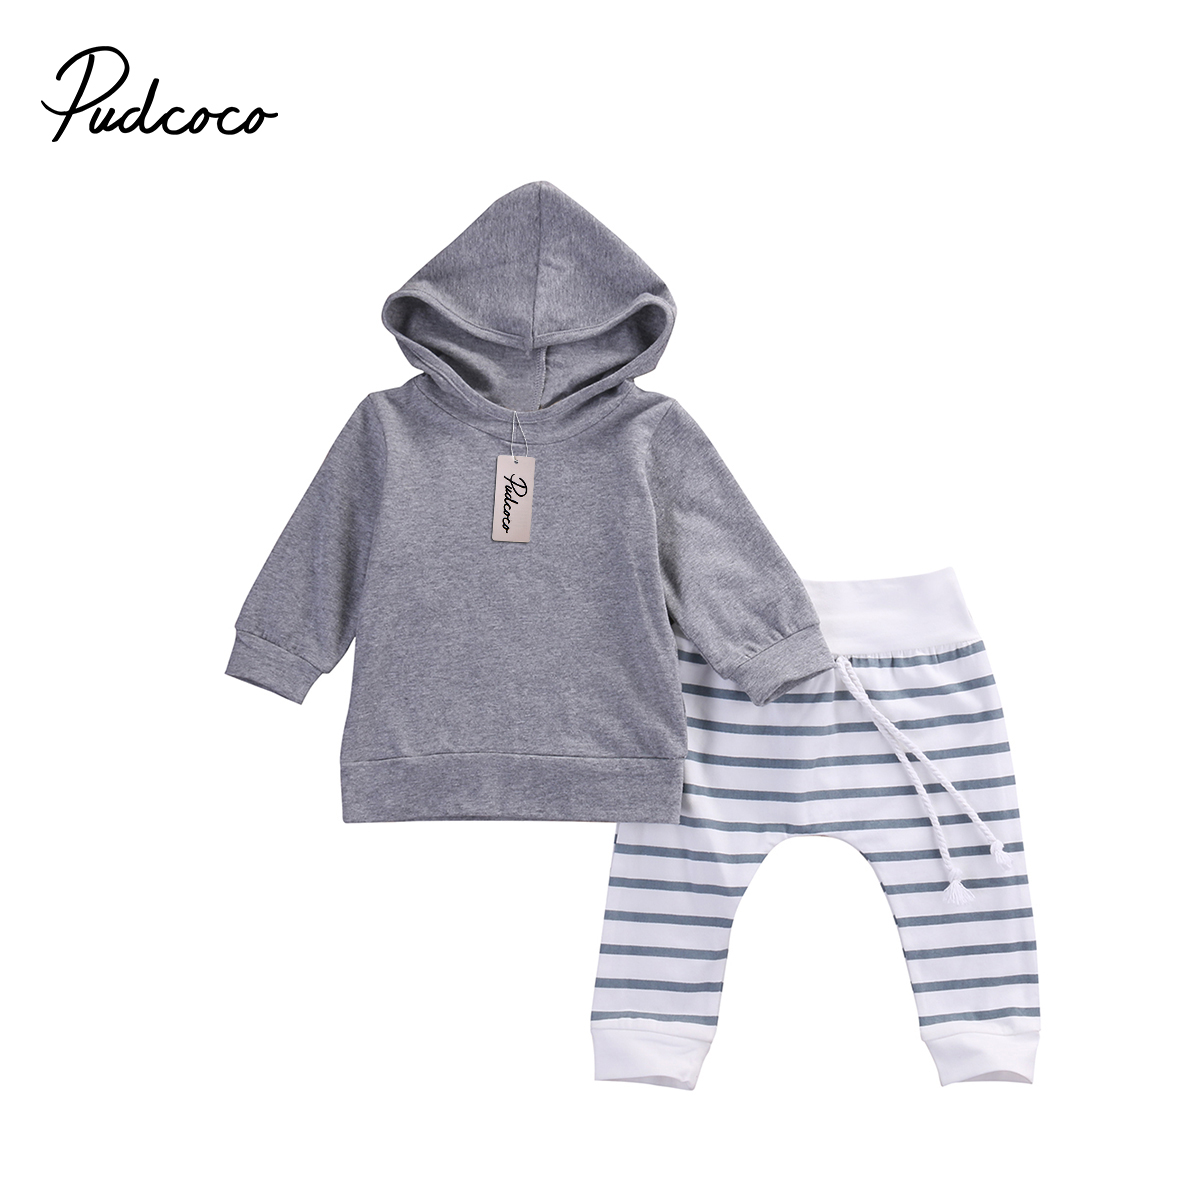 Pudcoco 2PCS Baby Boys & Girl Warm Cotton Long Sleeve Hooded + Pants Outfit Set 0-18 Months Helen115